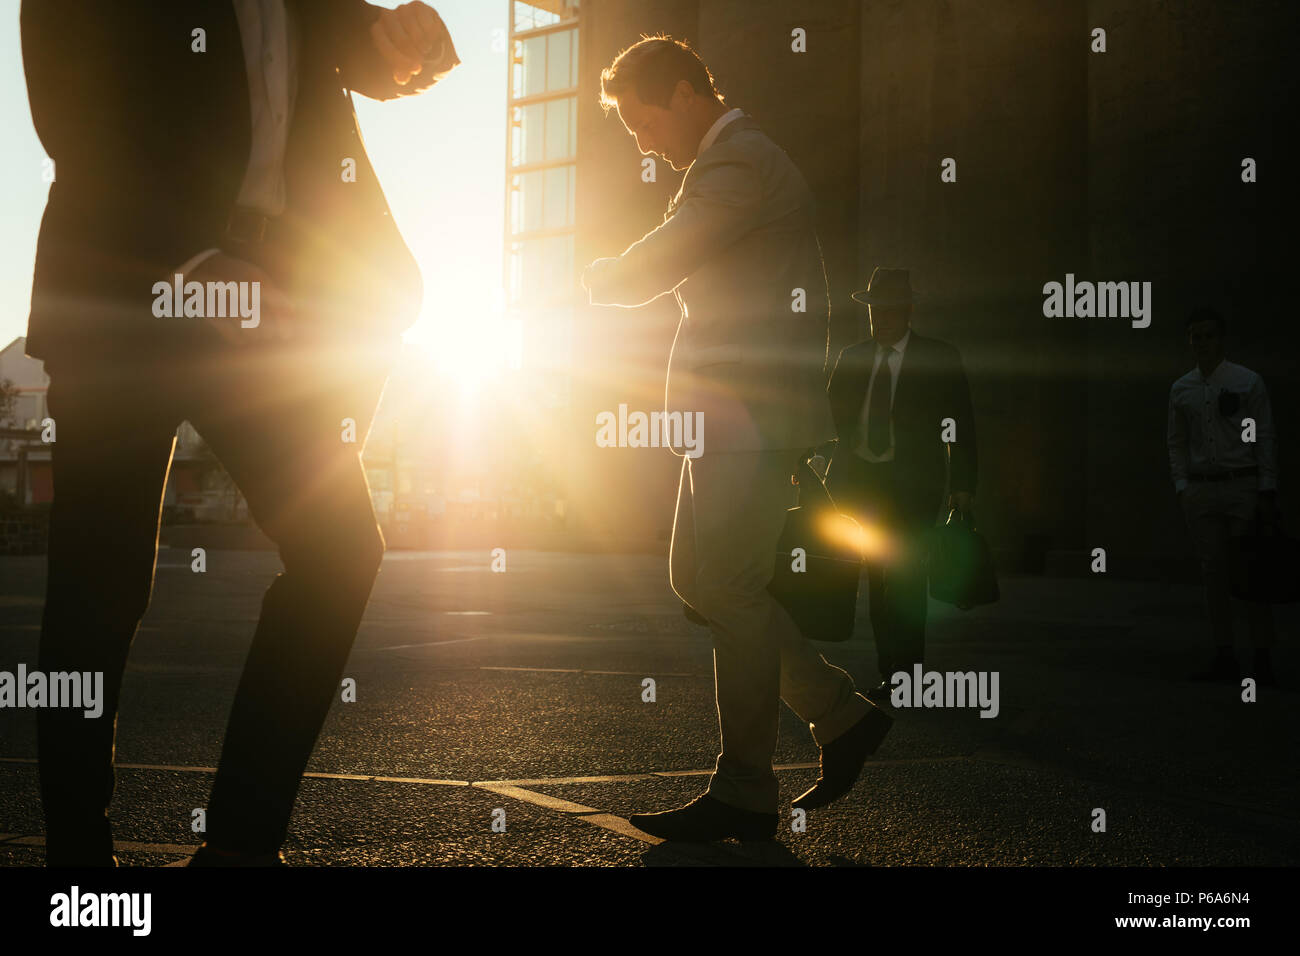 Men commuting to office early in the morning carrying office bags looking at their wrist watch. Businessmen in hurry to reach office walking on city s - Stock Image